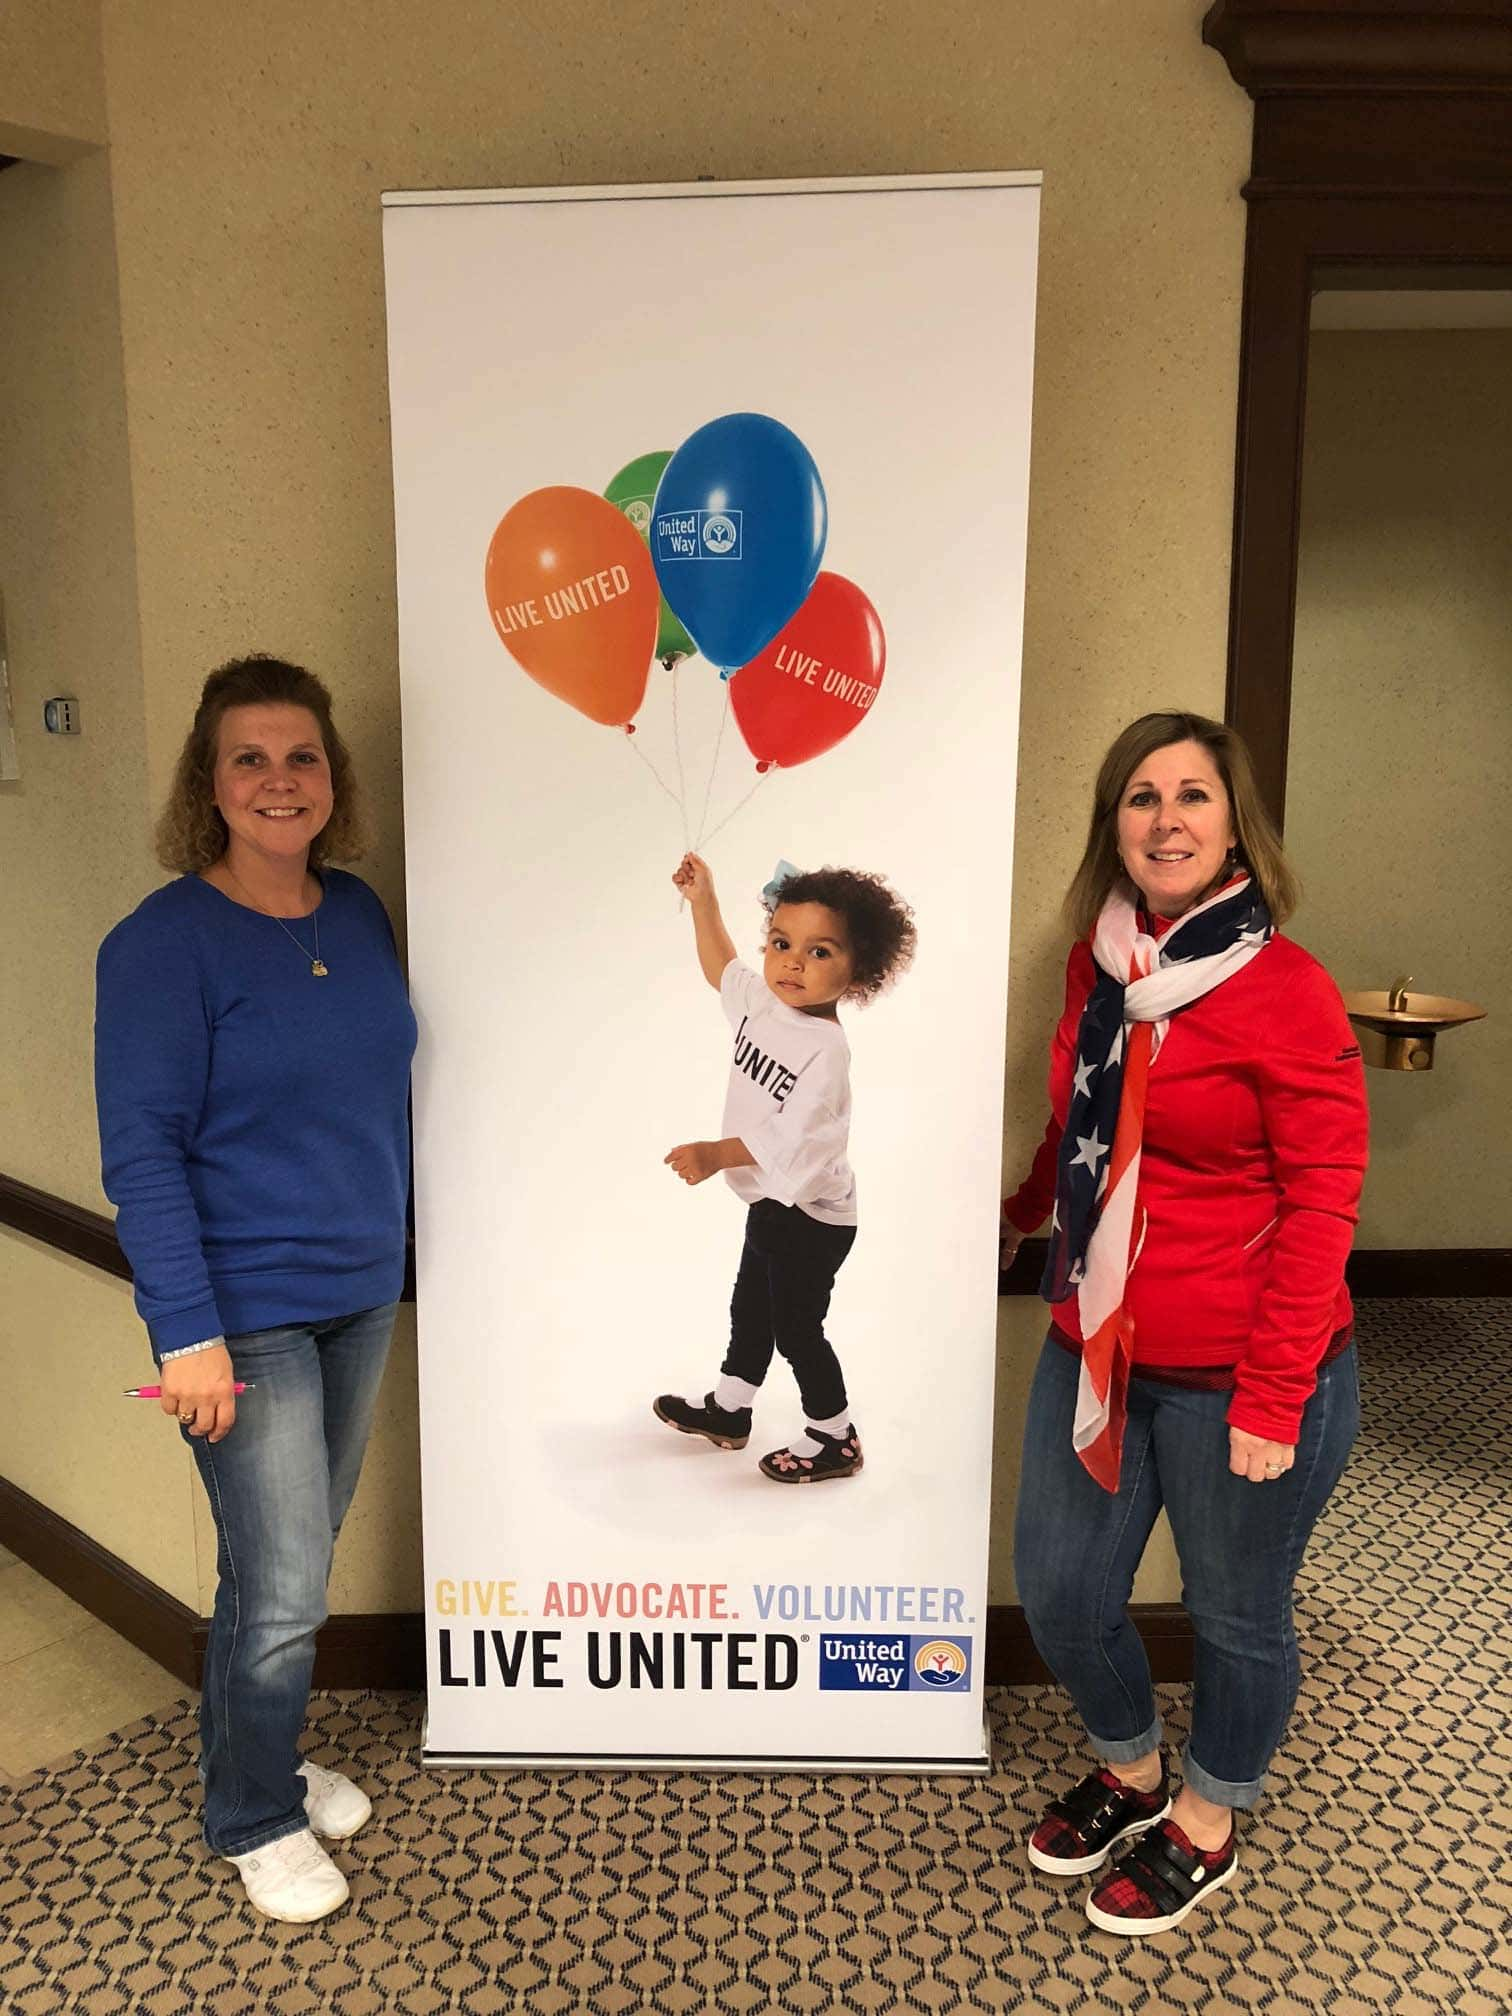 USA Day for United Way